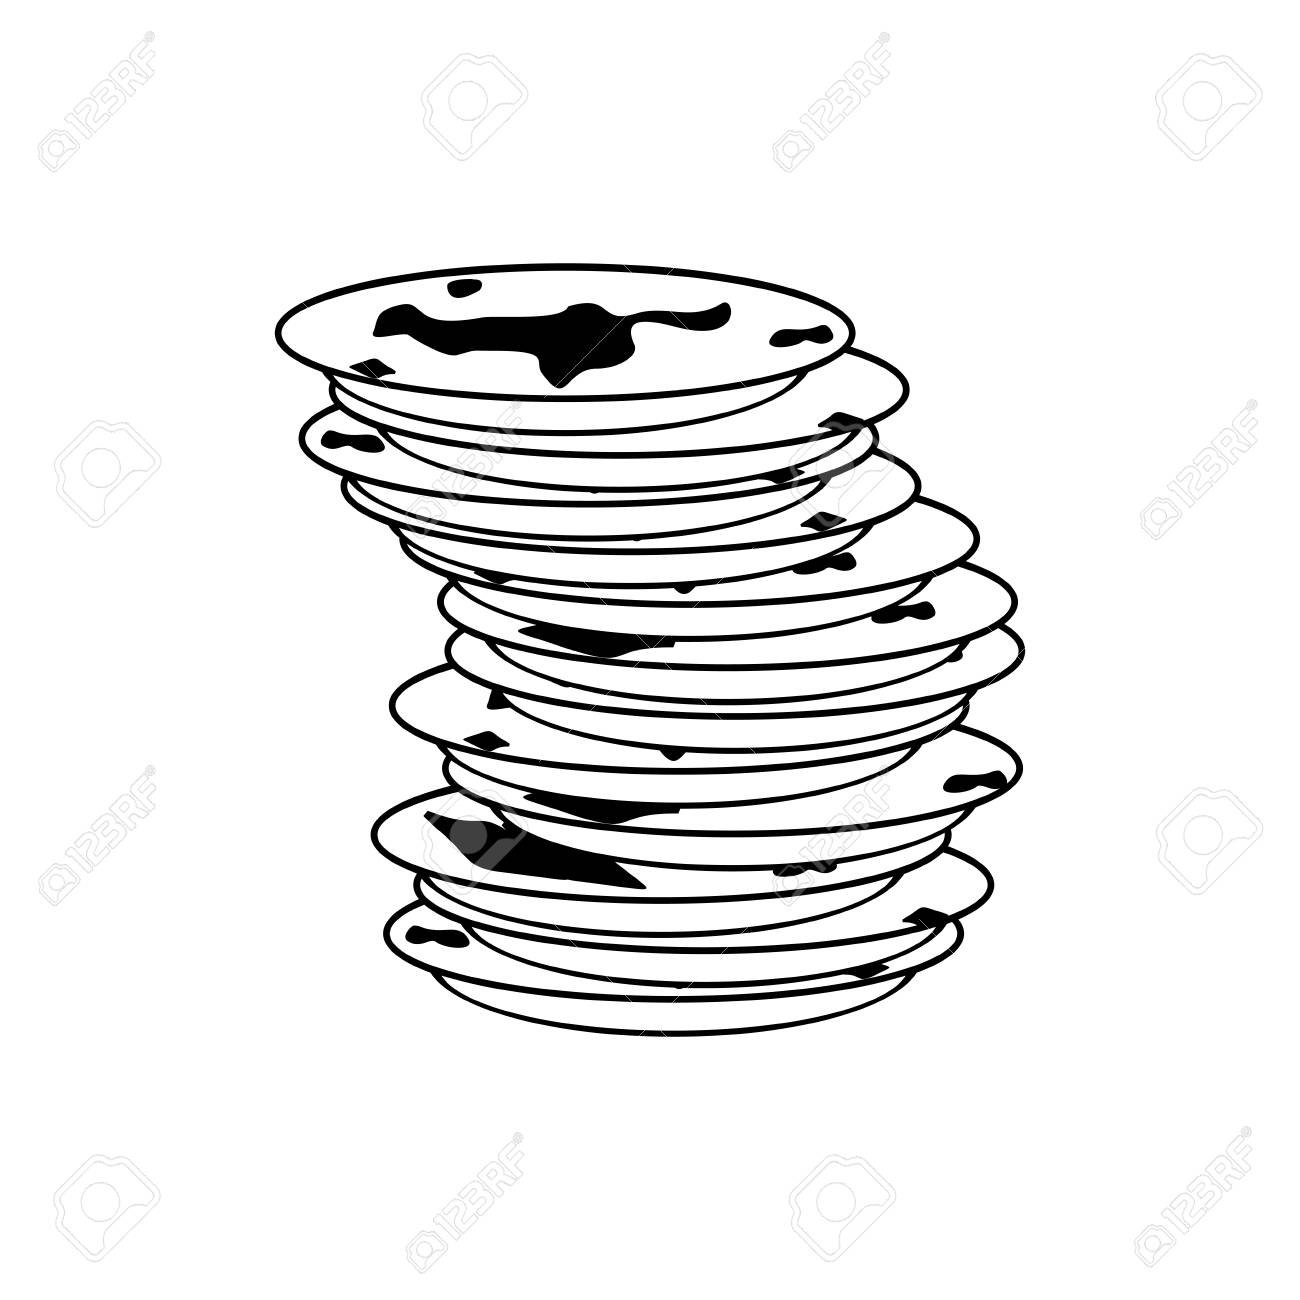 Dirty Dishes Clipart Black And White.